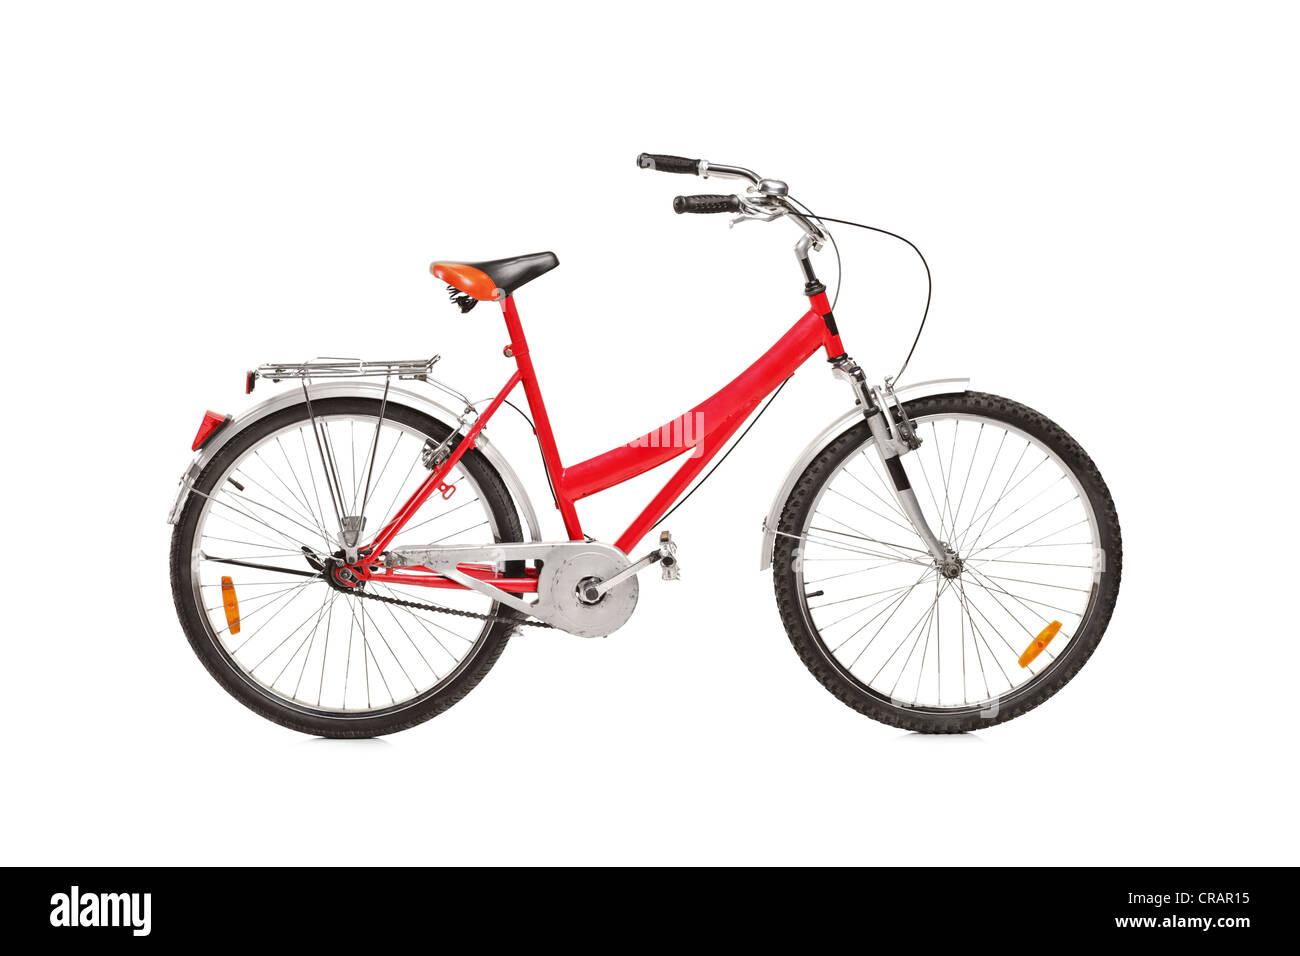 Studio shot of a bicycle isolated against white background - Stock Image